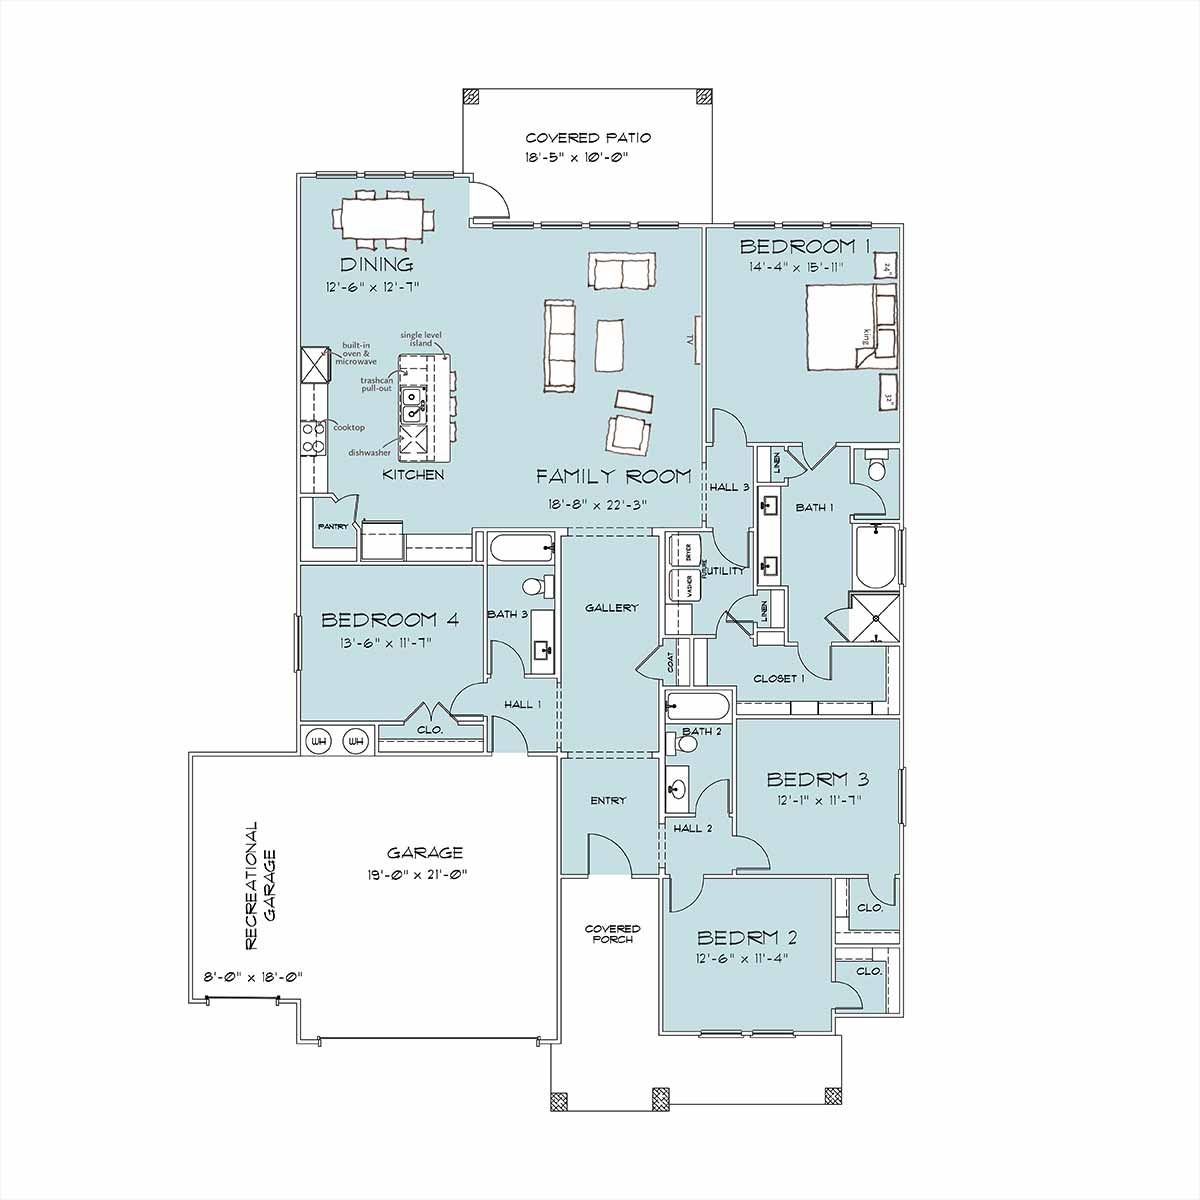 Everest Floor Plan by Omega Builders in River Place